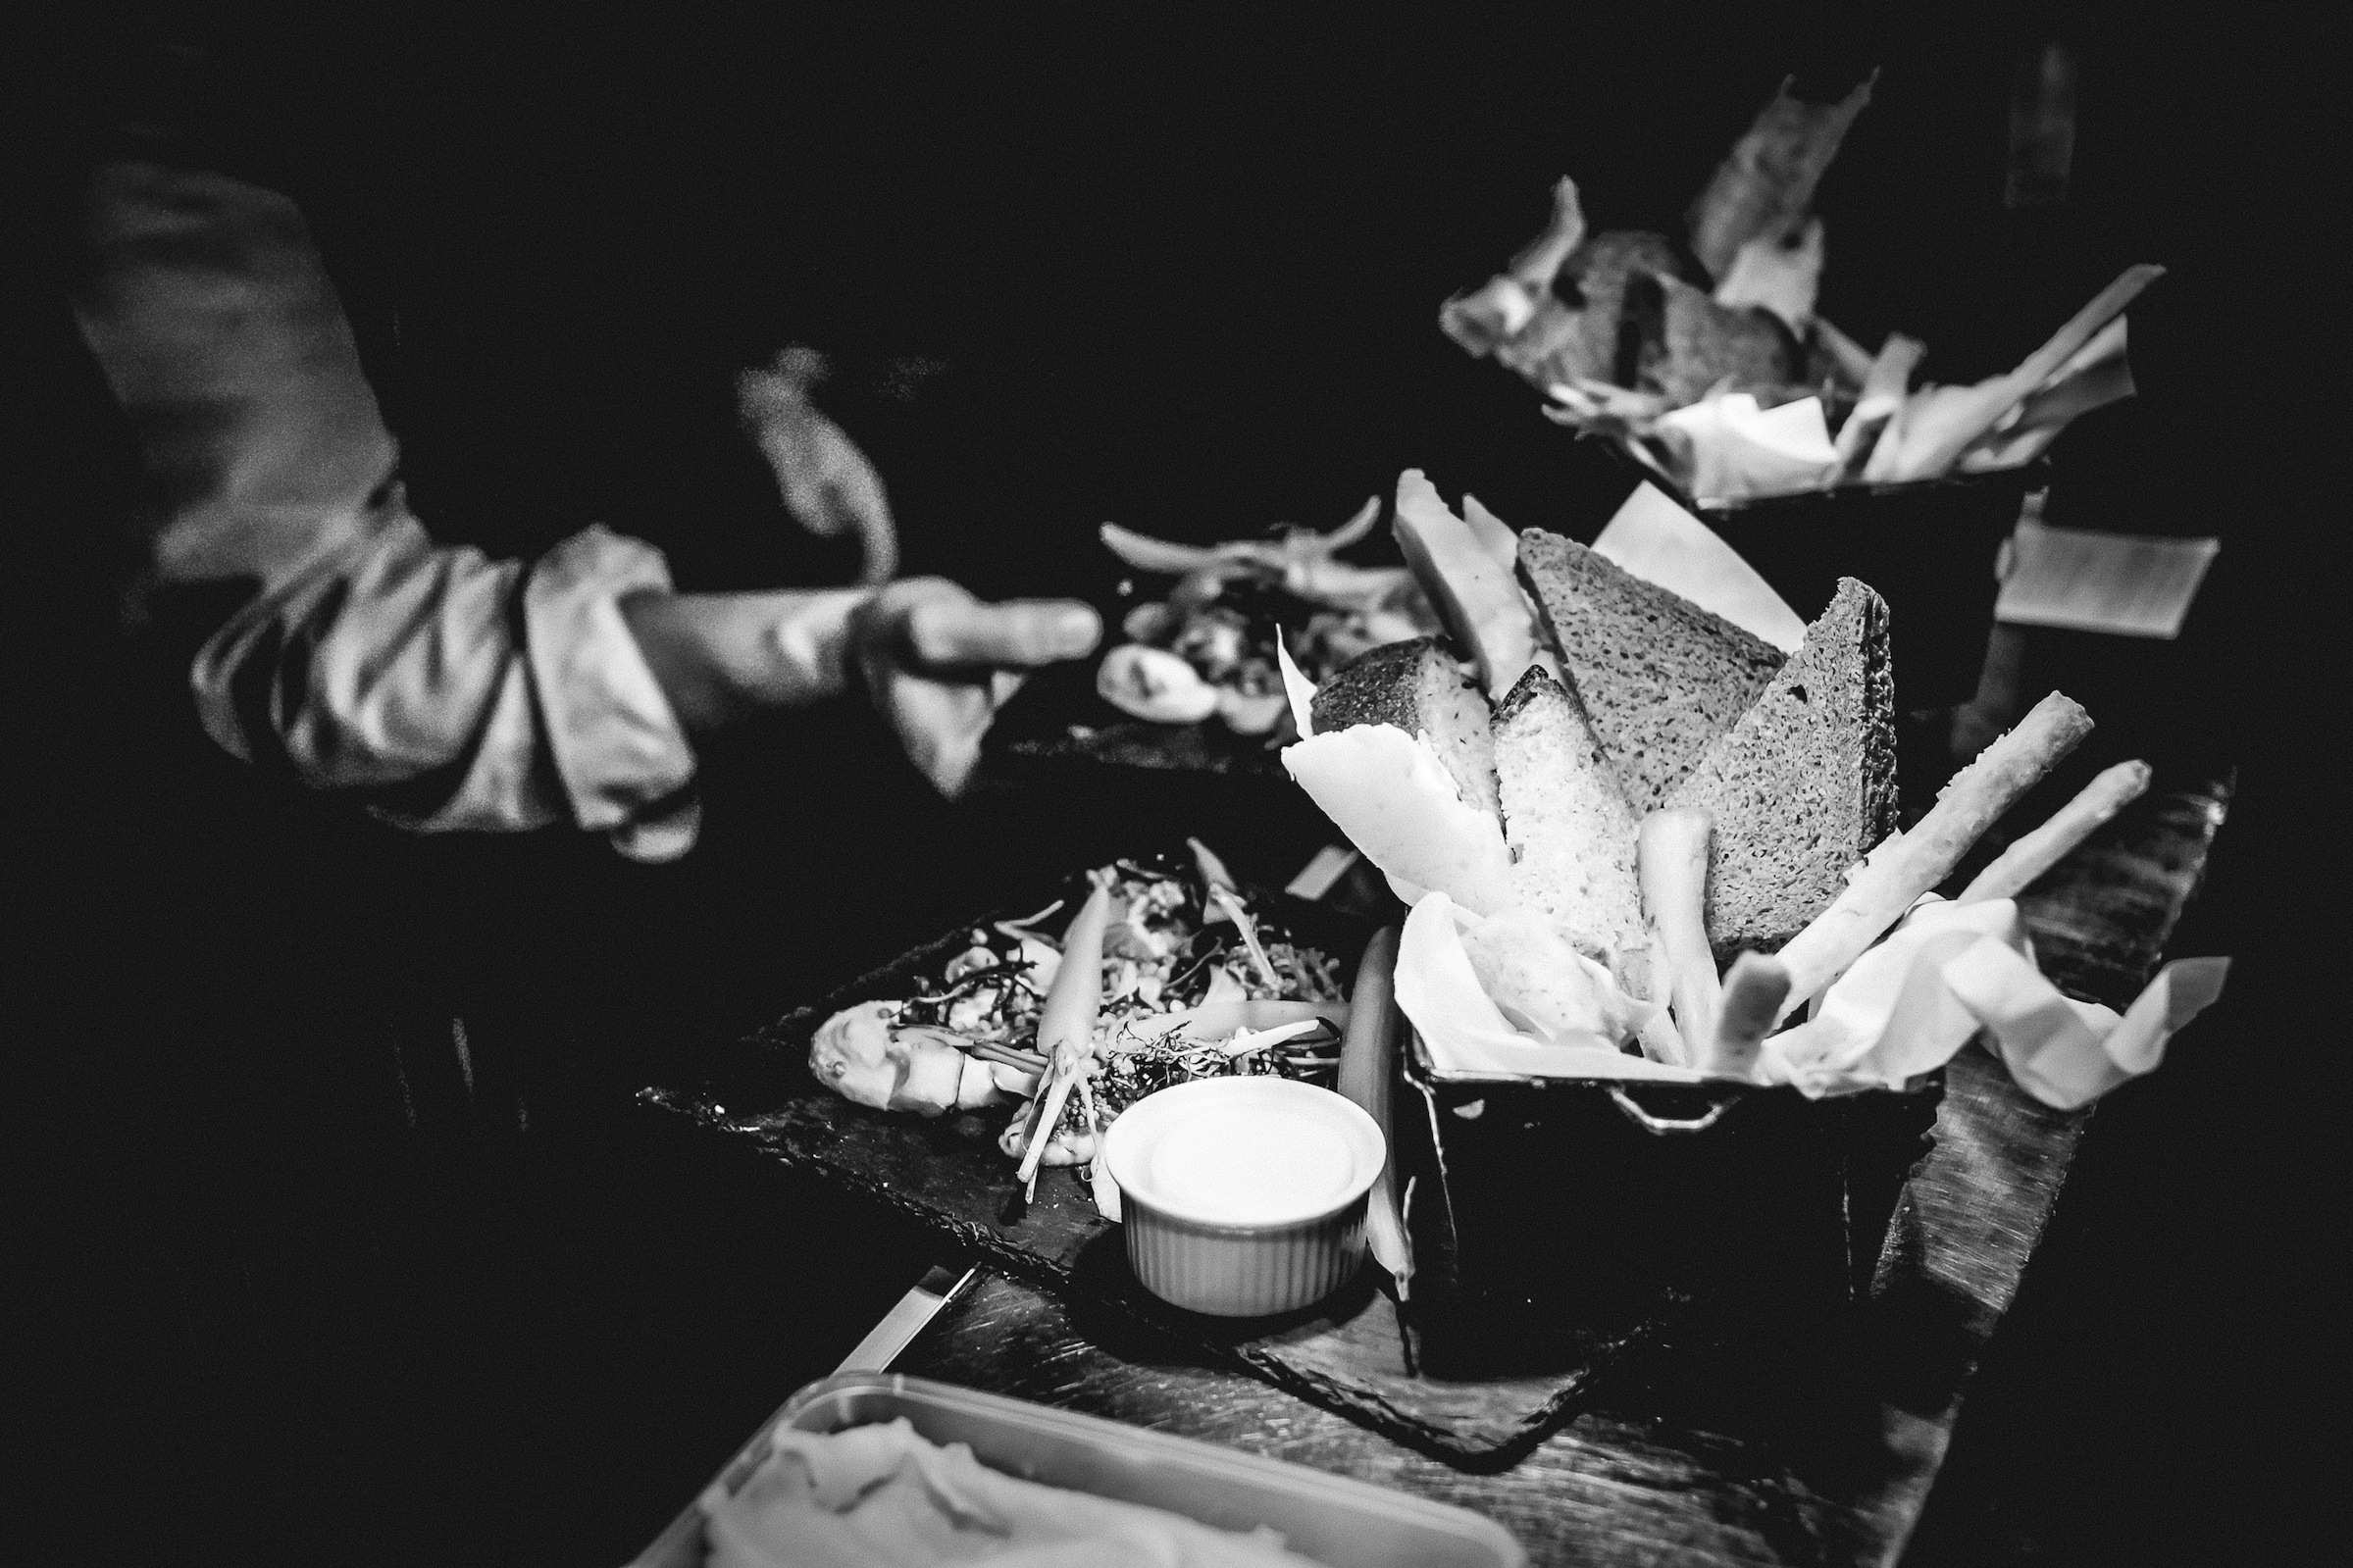 Supper Club.  Fuji XE1 | 35mm | F2.2 - 1/3000th - iso1600